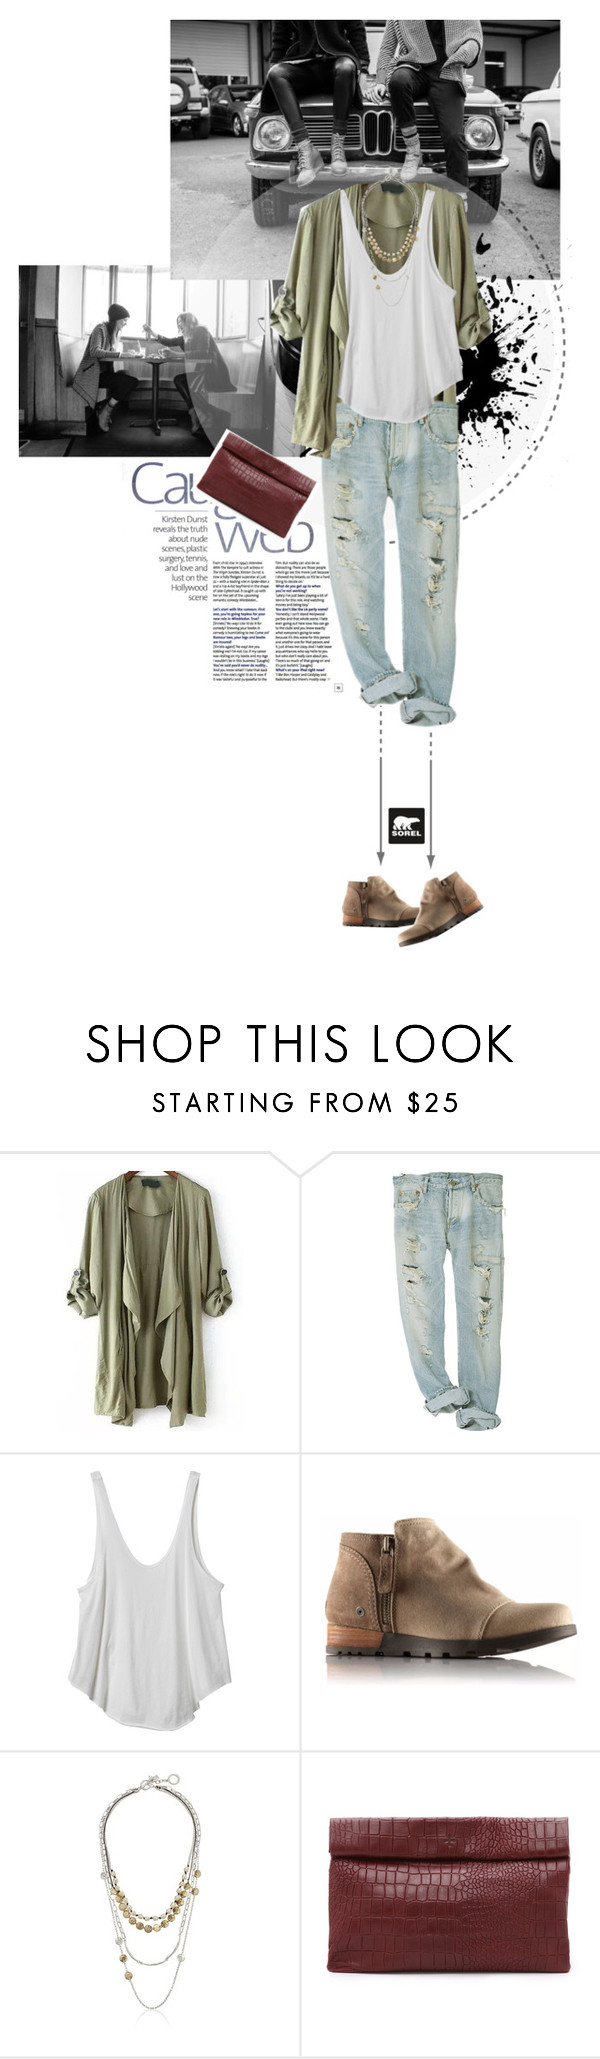 """""""fall mood"""" by inesa-styles ❤ liked on Polyvore featuring SOREL, RVCA, Robert Lee Morris and Marie Turnor"""